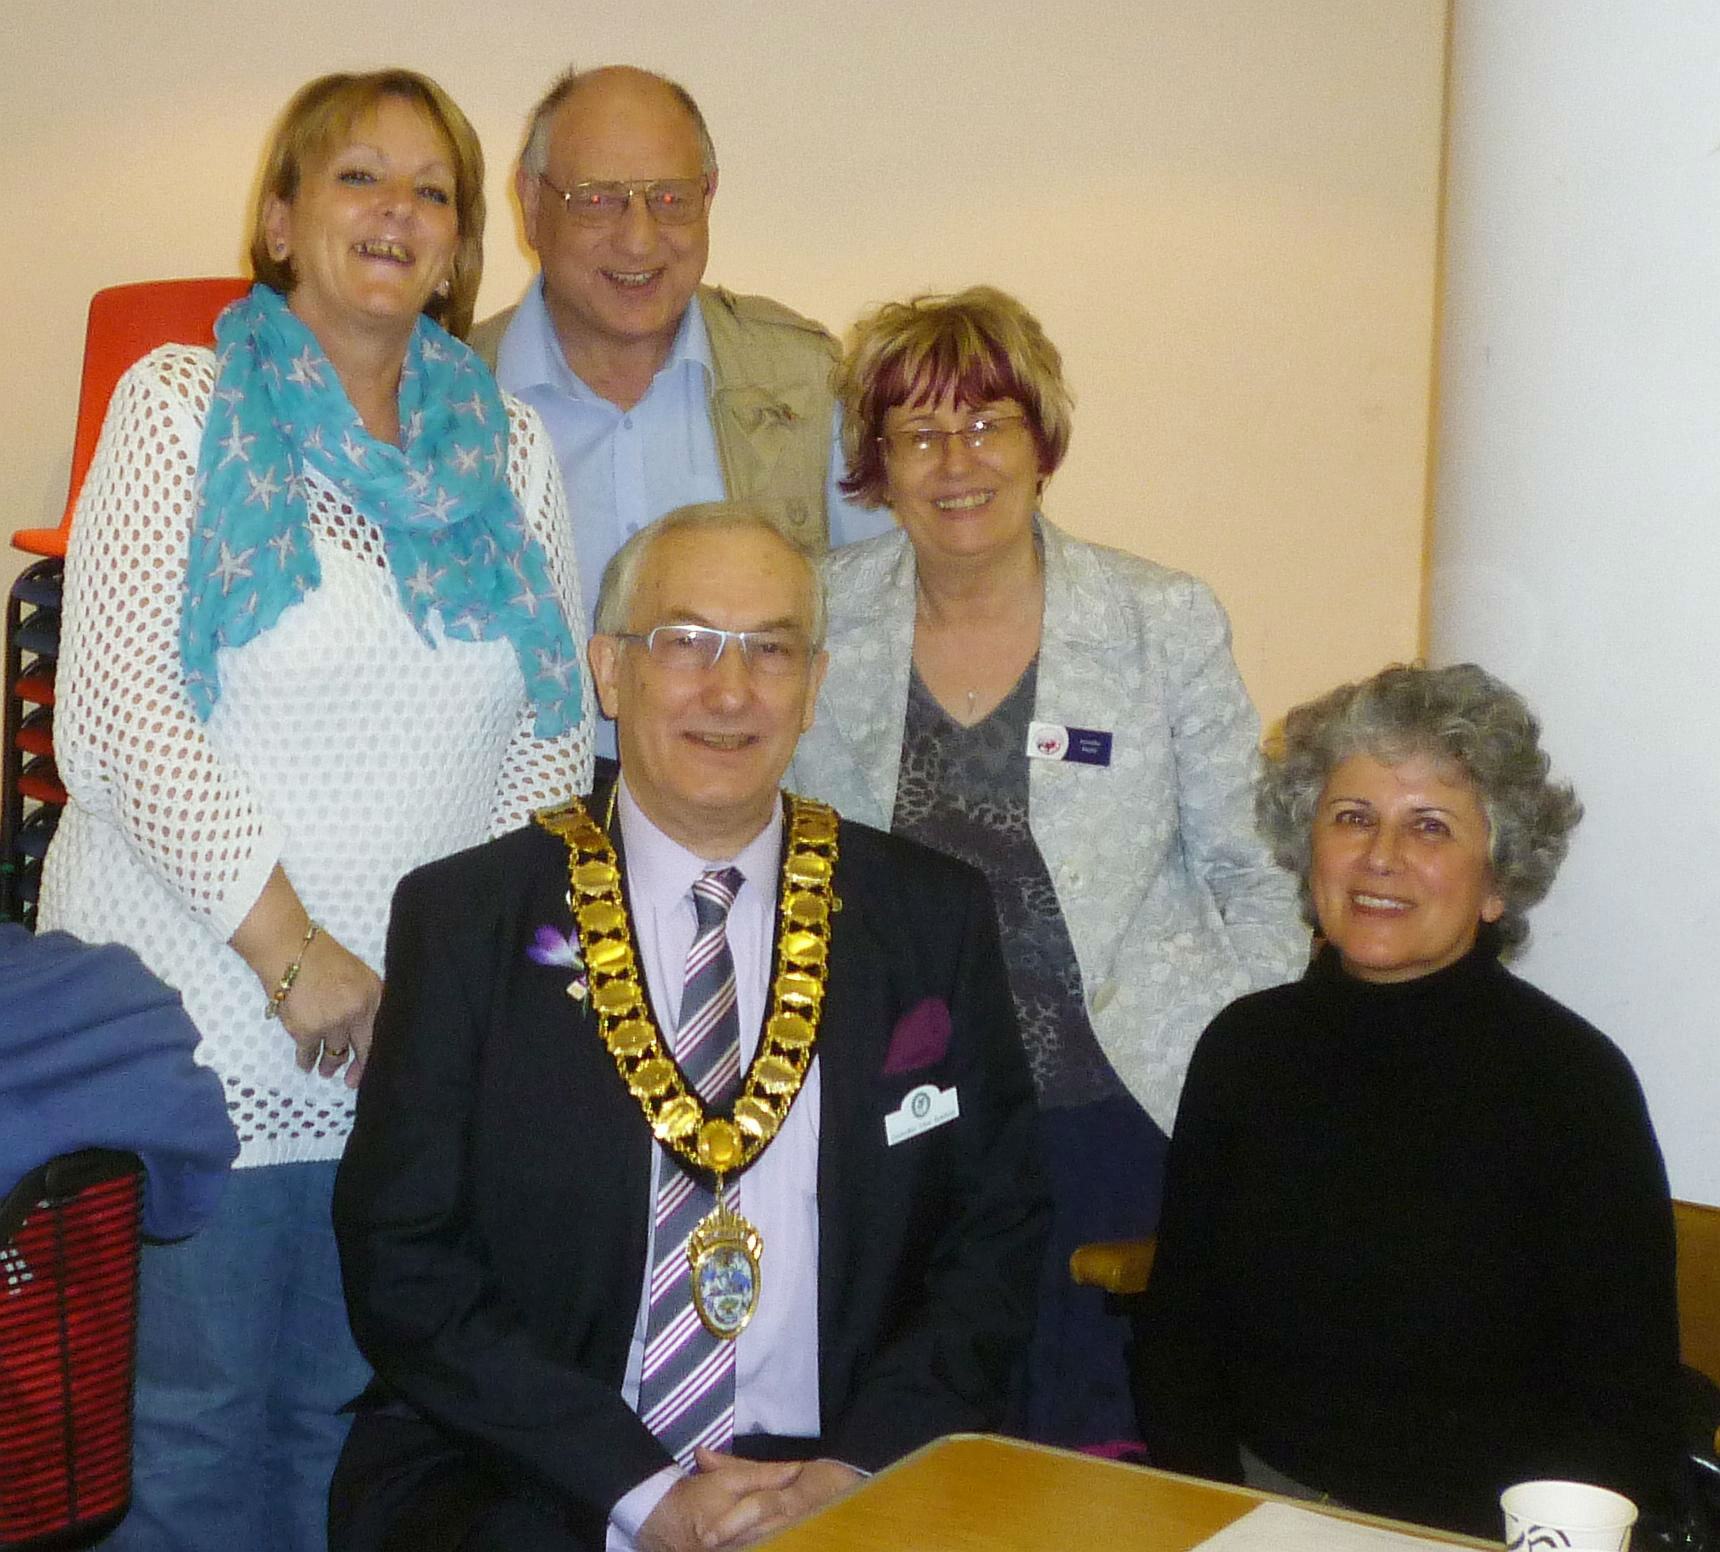 Cllr Clive Butchins with Jennifer Reefe and some of the neighbour